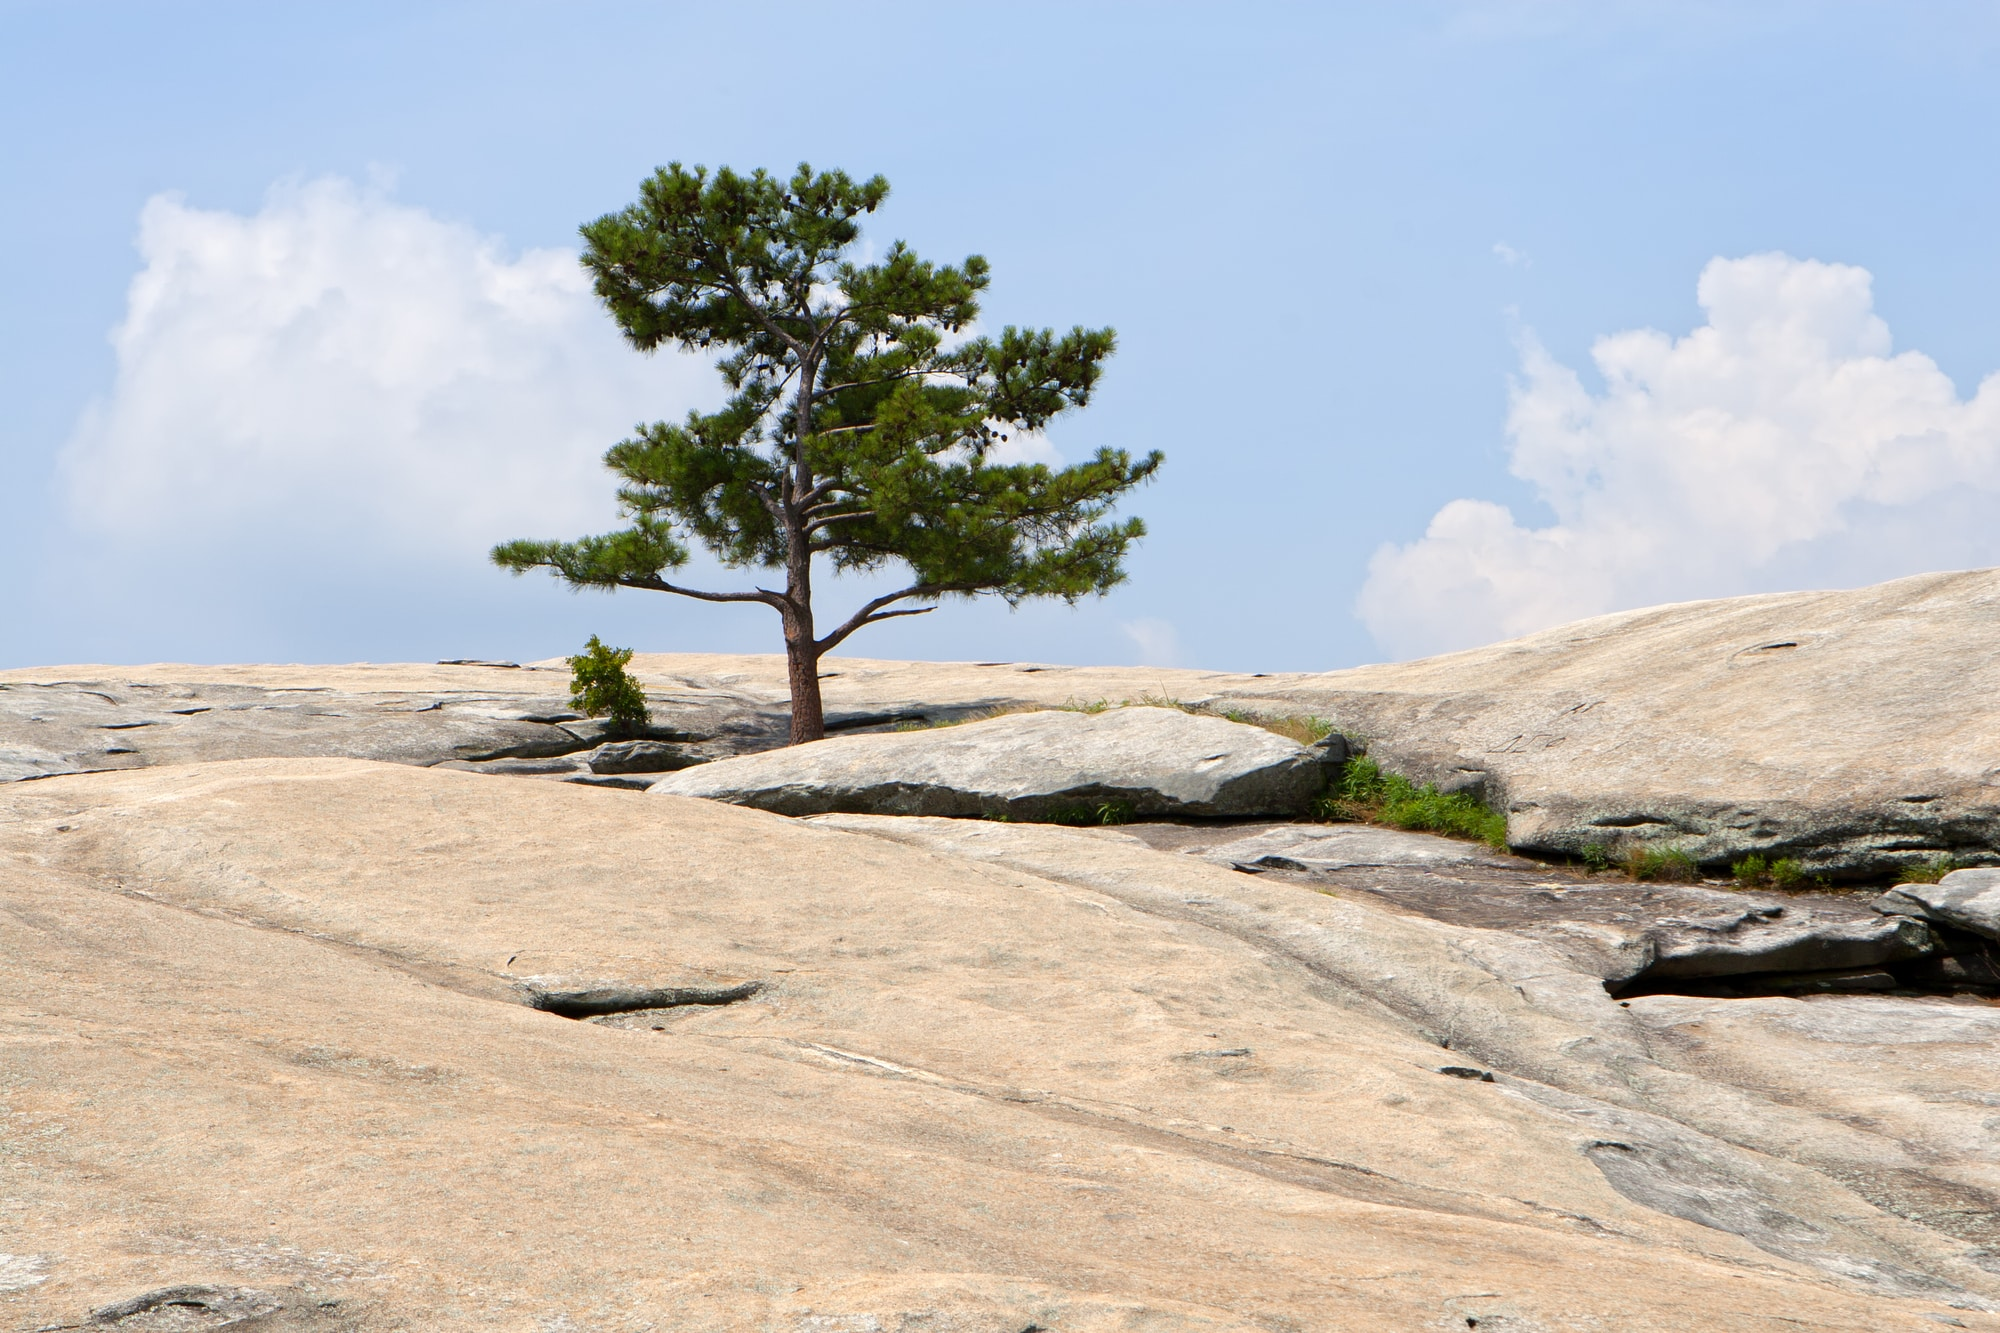 stone mountain, a cliff with a tree. A great destination for an affordable romantic getaway